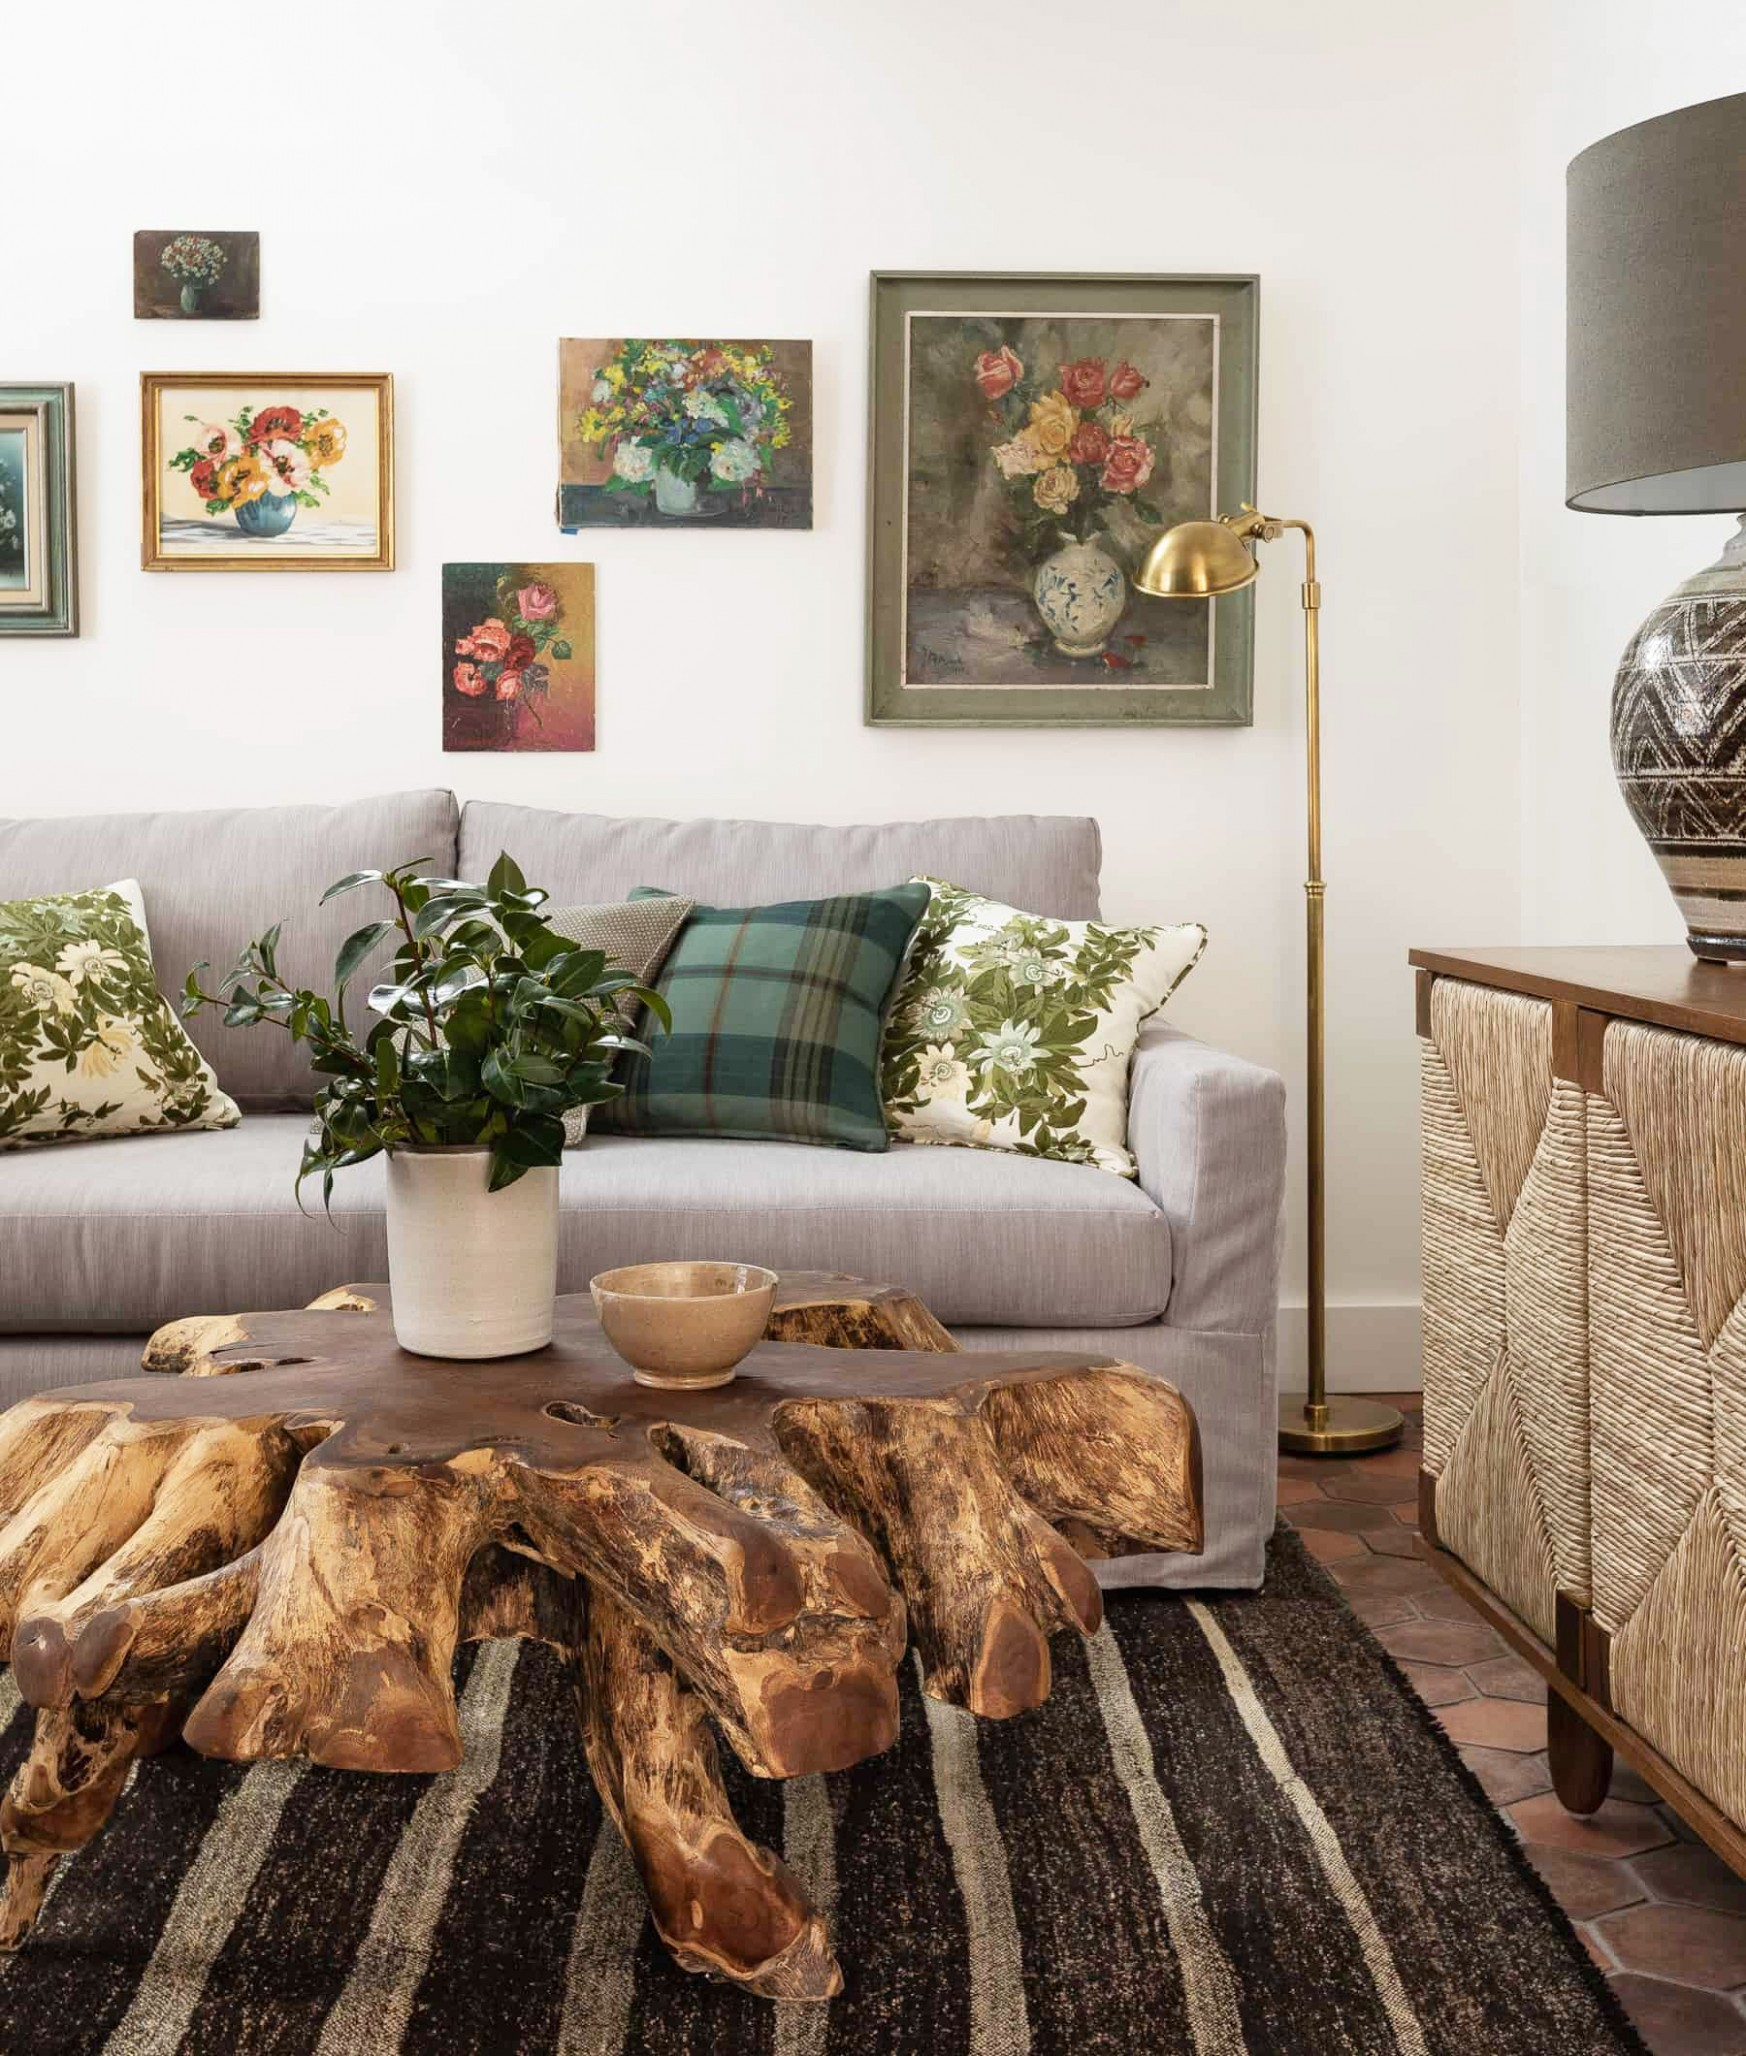 How to Decorate Your First Apartment - First Apartment Decorating  - Apartment Design Guidelines